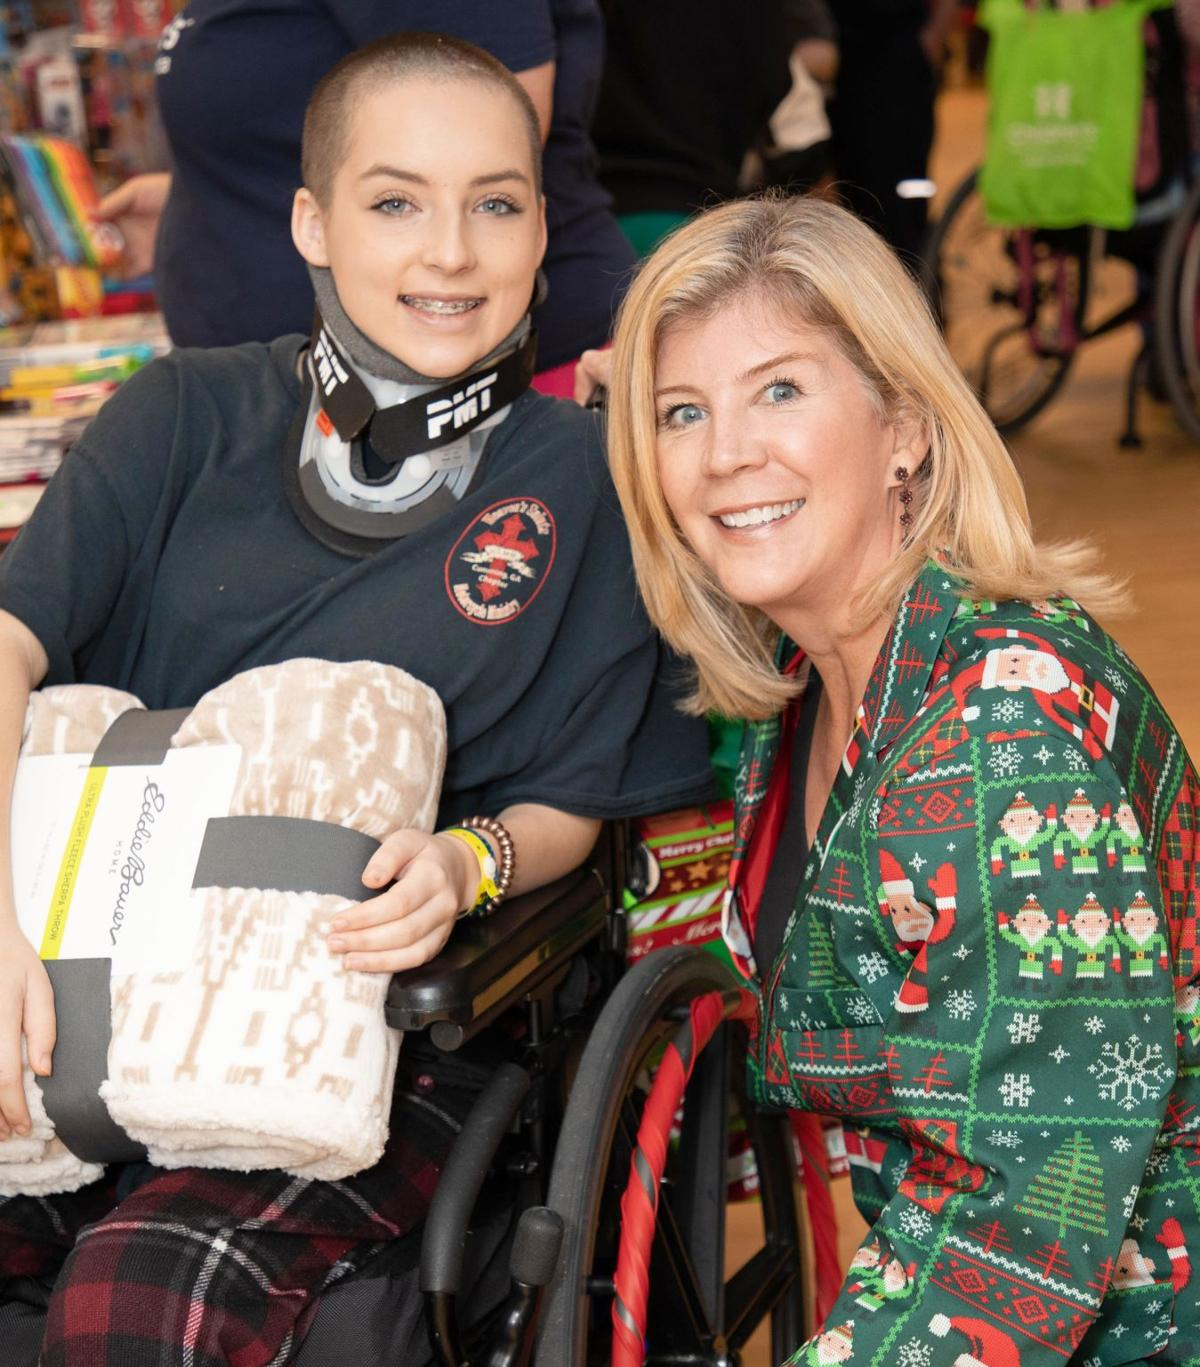 012220_MNS_full_Christmas_Bazaar_003 Nina Cheney with patient